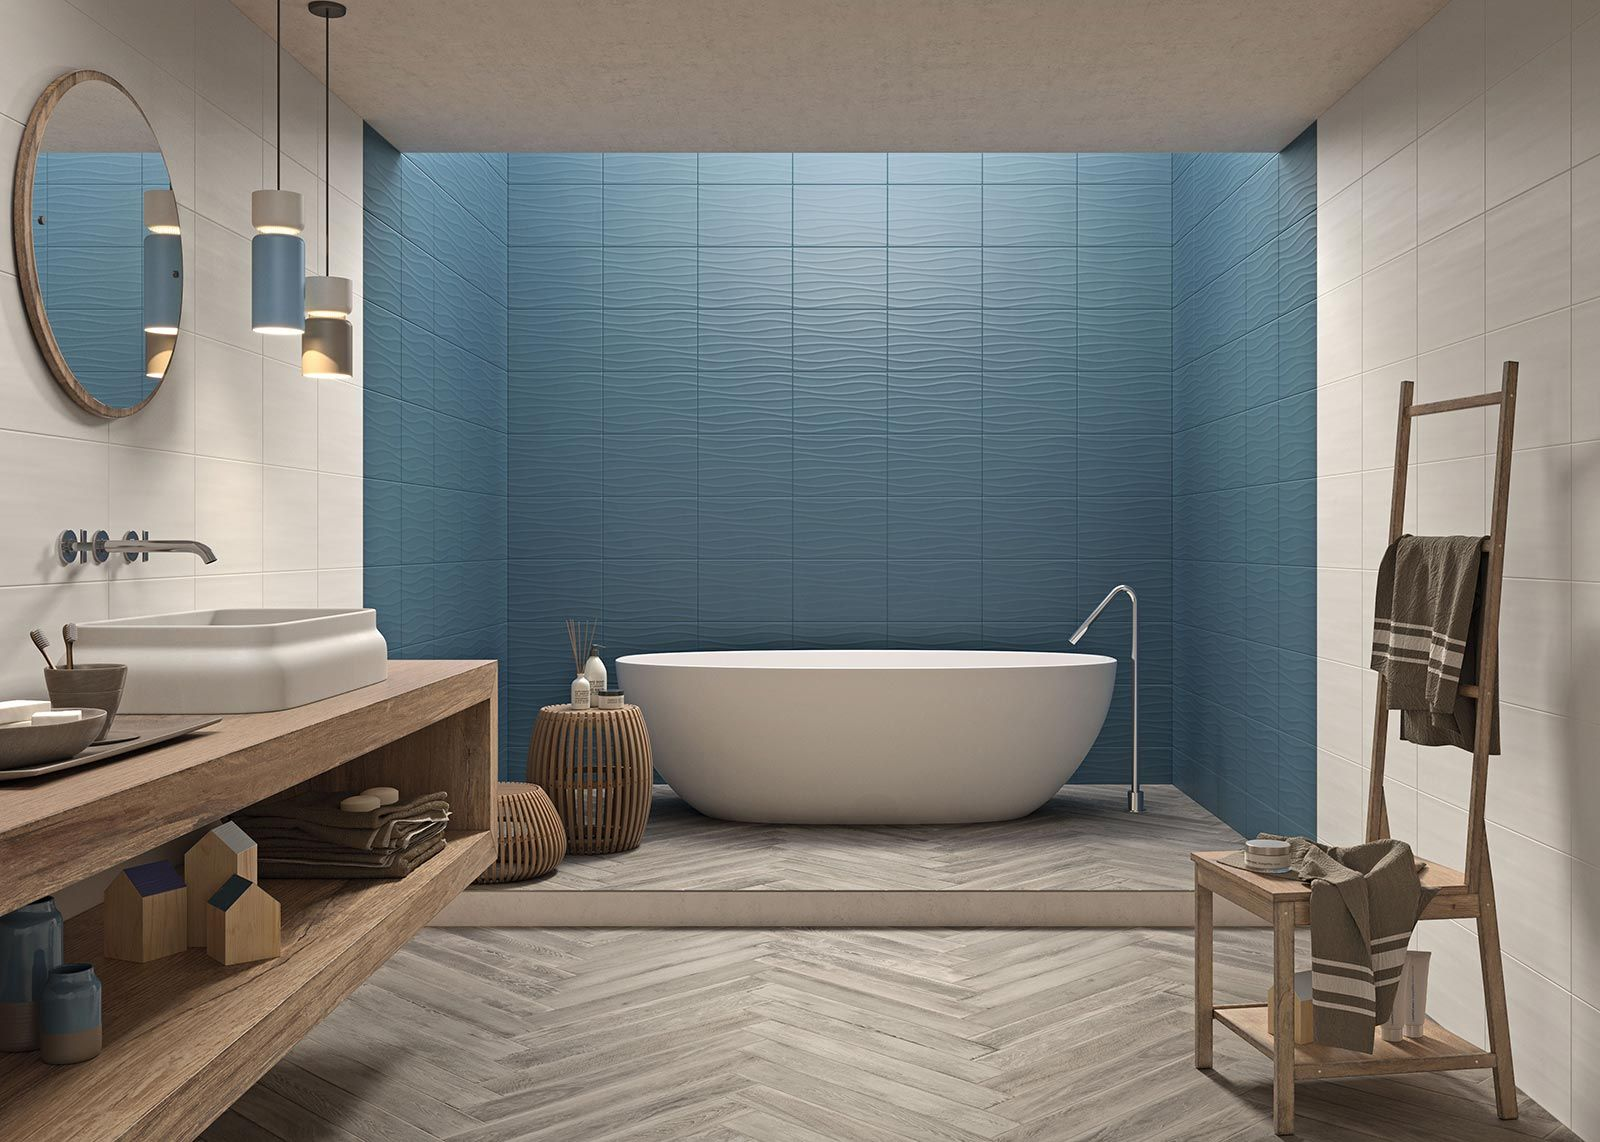 Bathroom tiles: ceramic and porcelain stoneware - Marazzi 7438 | who ...